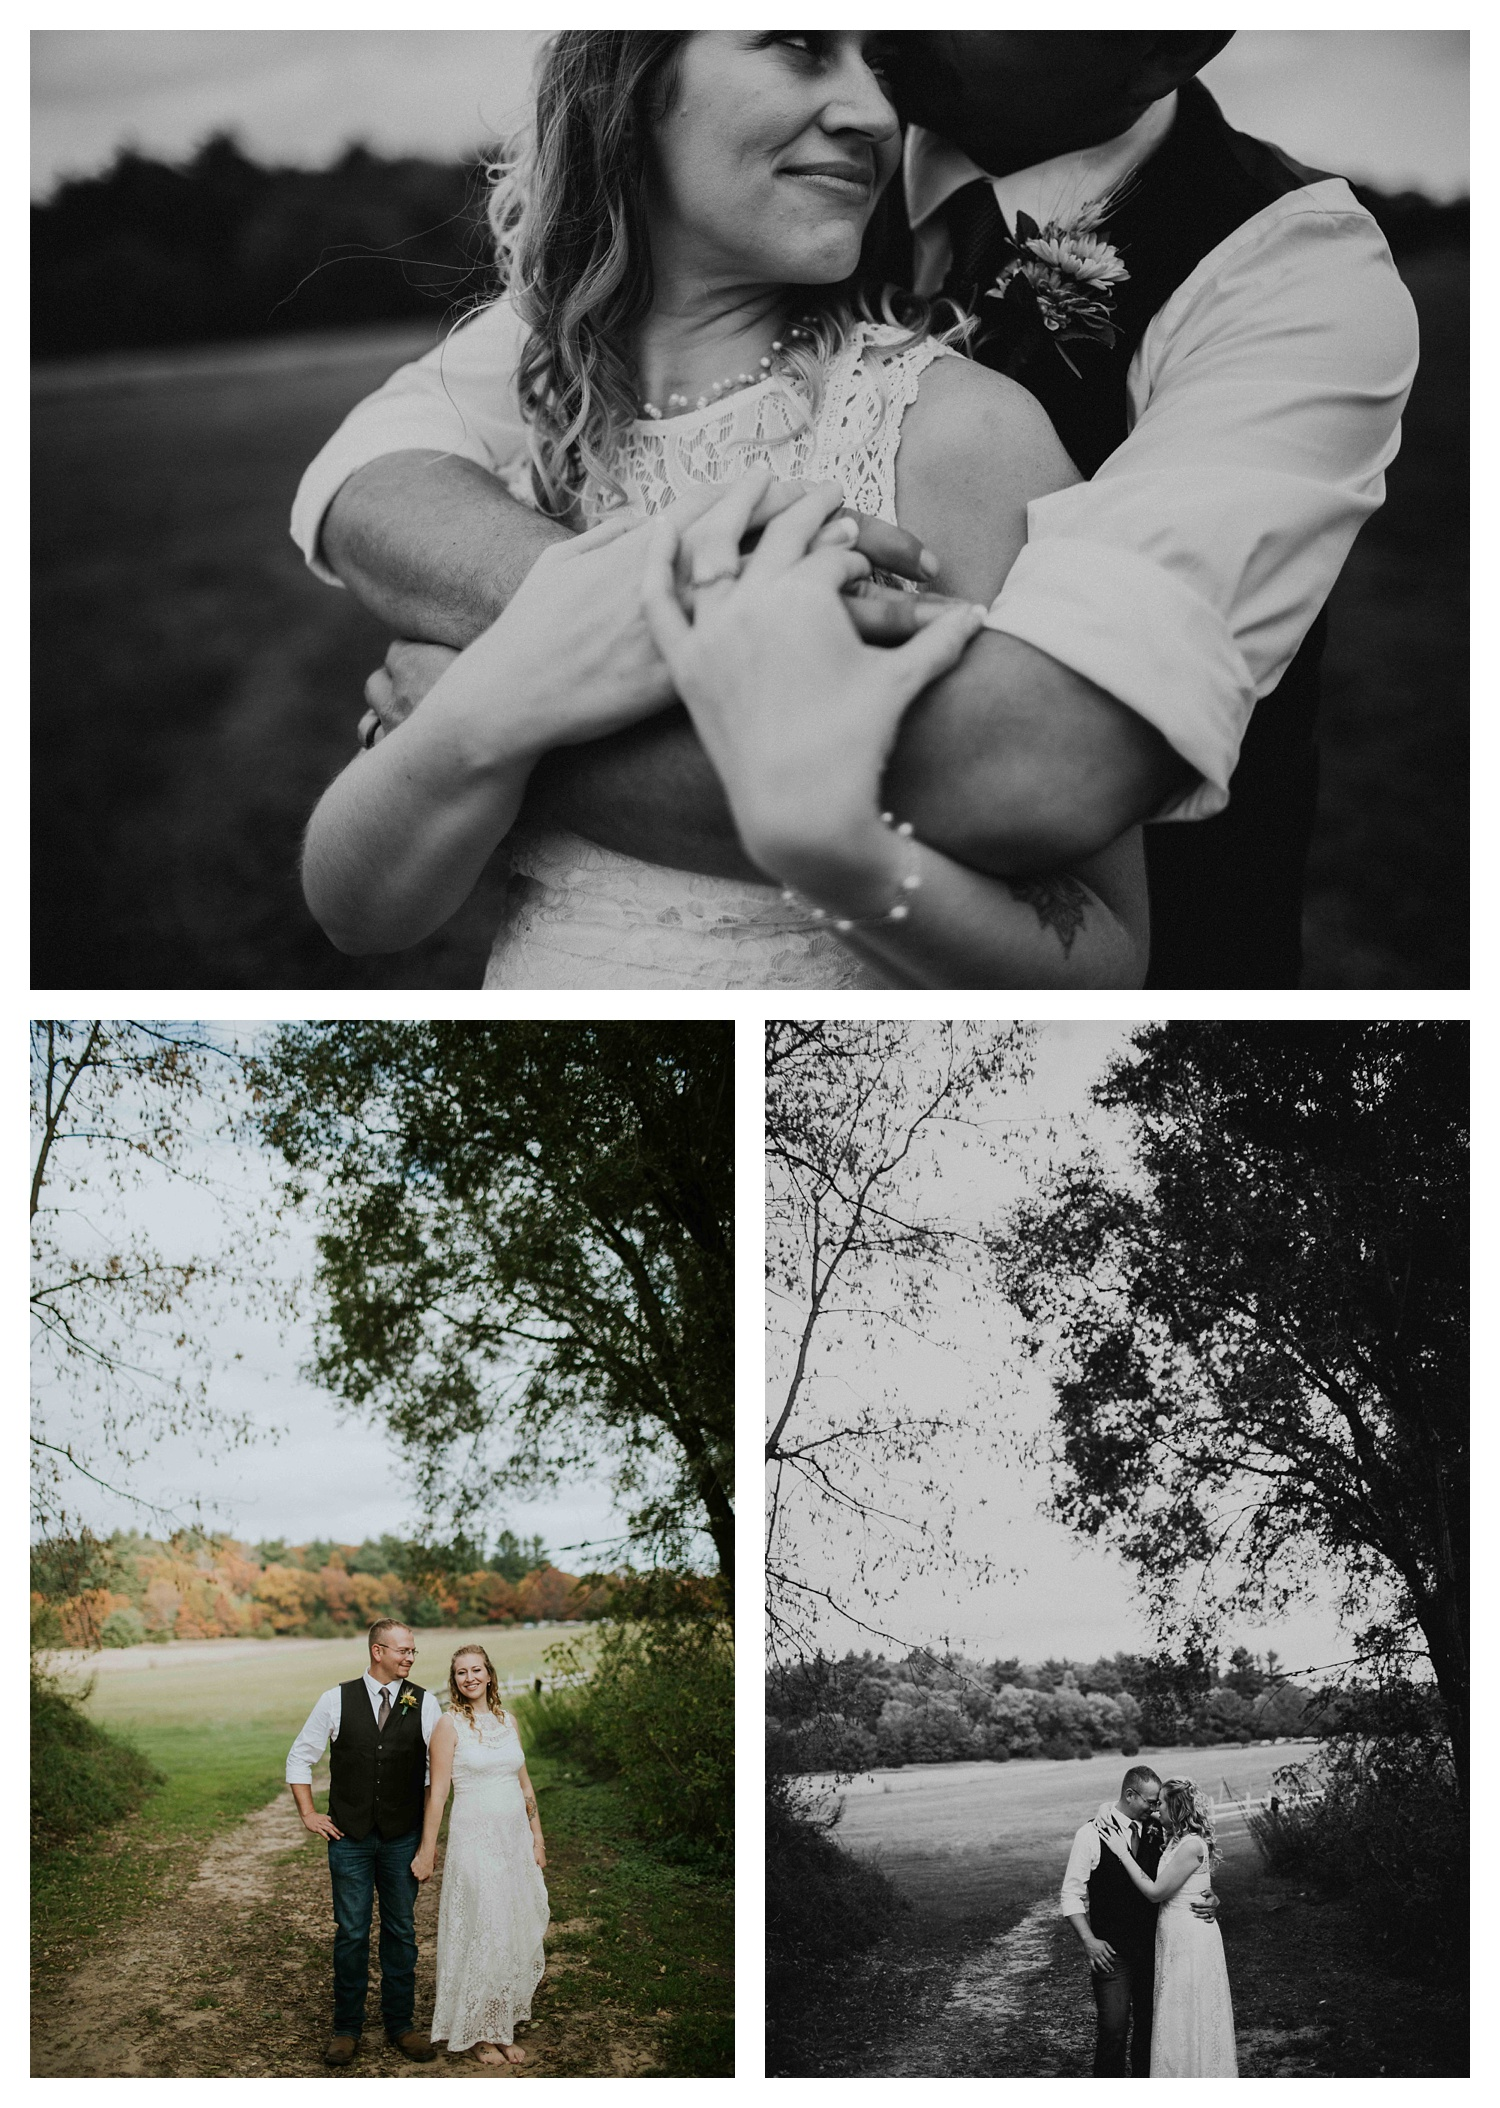 clauson barn wedding photographer chloe ann photography madison wisconsin photographer_0011.jpg